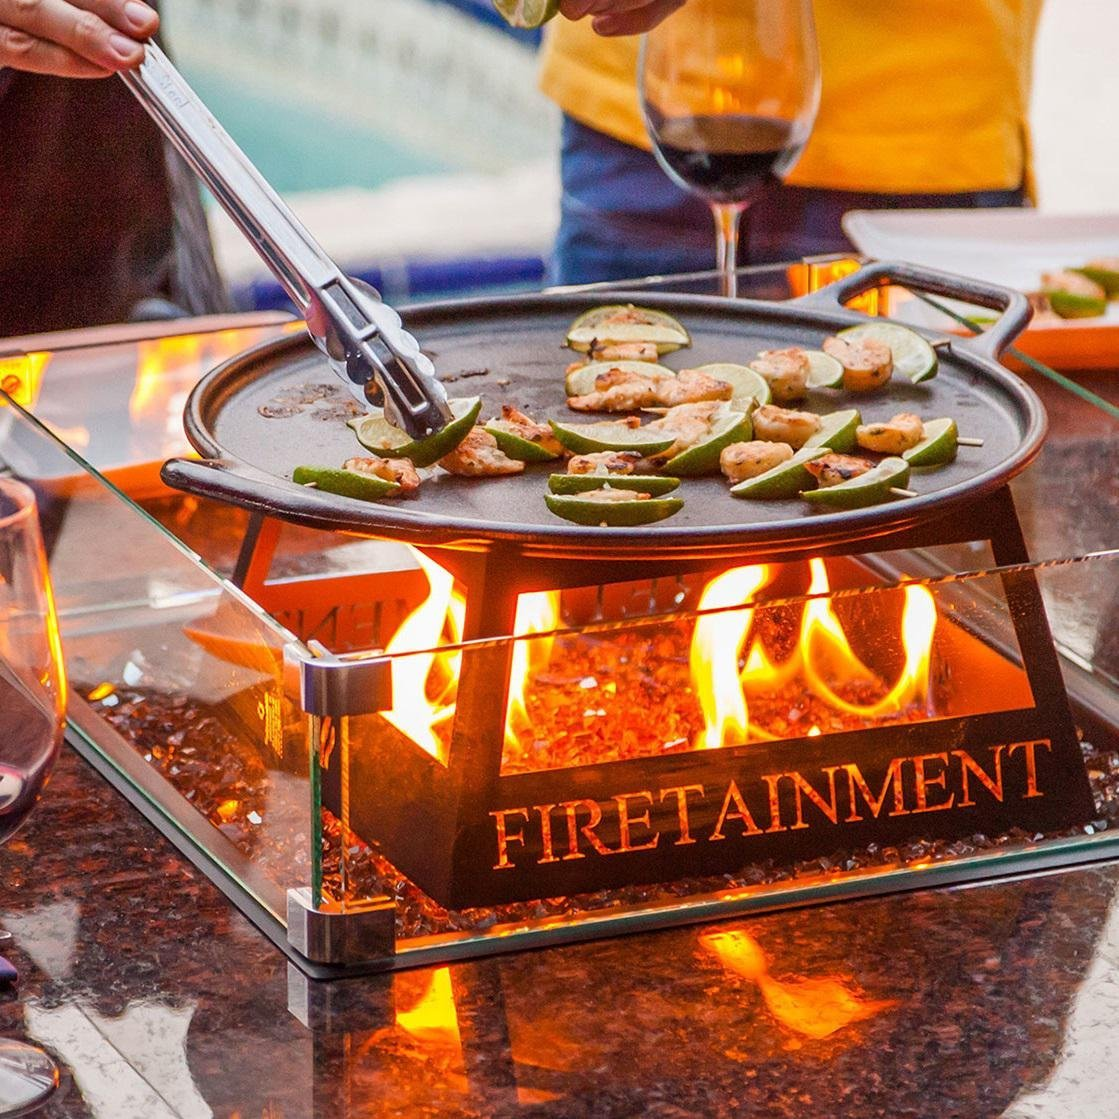 Firetainment Fire Pit Cooking Table